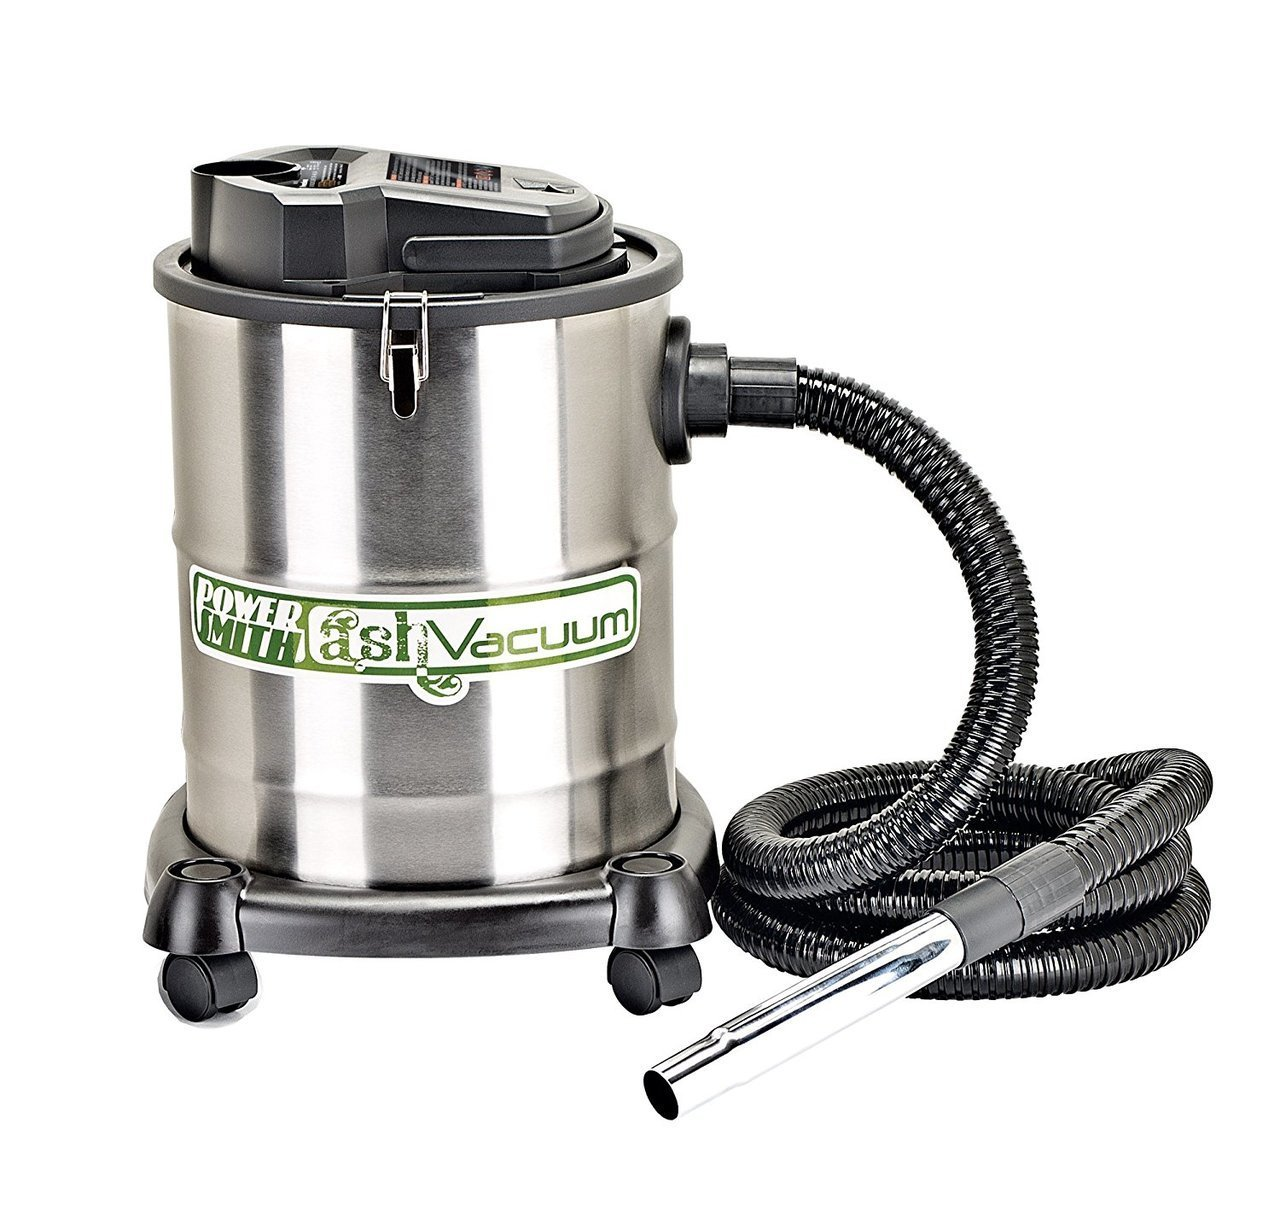 PowerSmith PAVC102 10 Amp 4 Gallon Ash Vacuum with 2 Ash Filters, Silver by PowerSmith